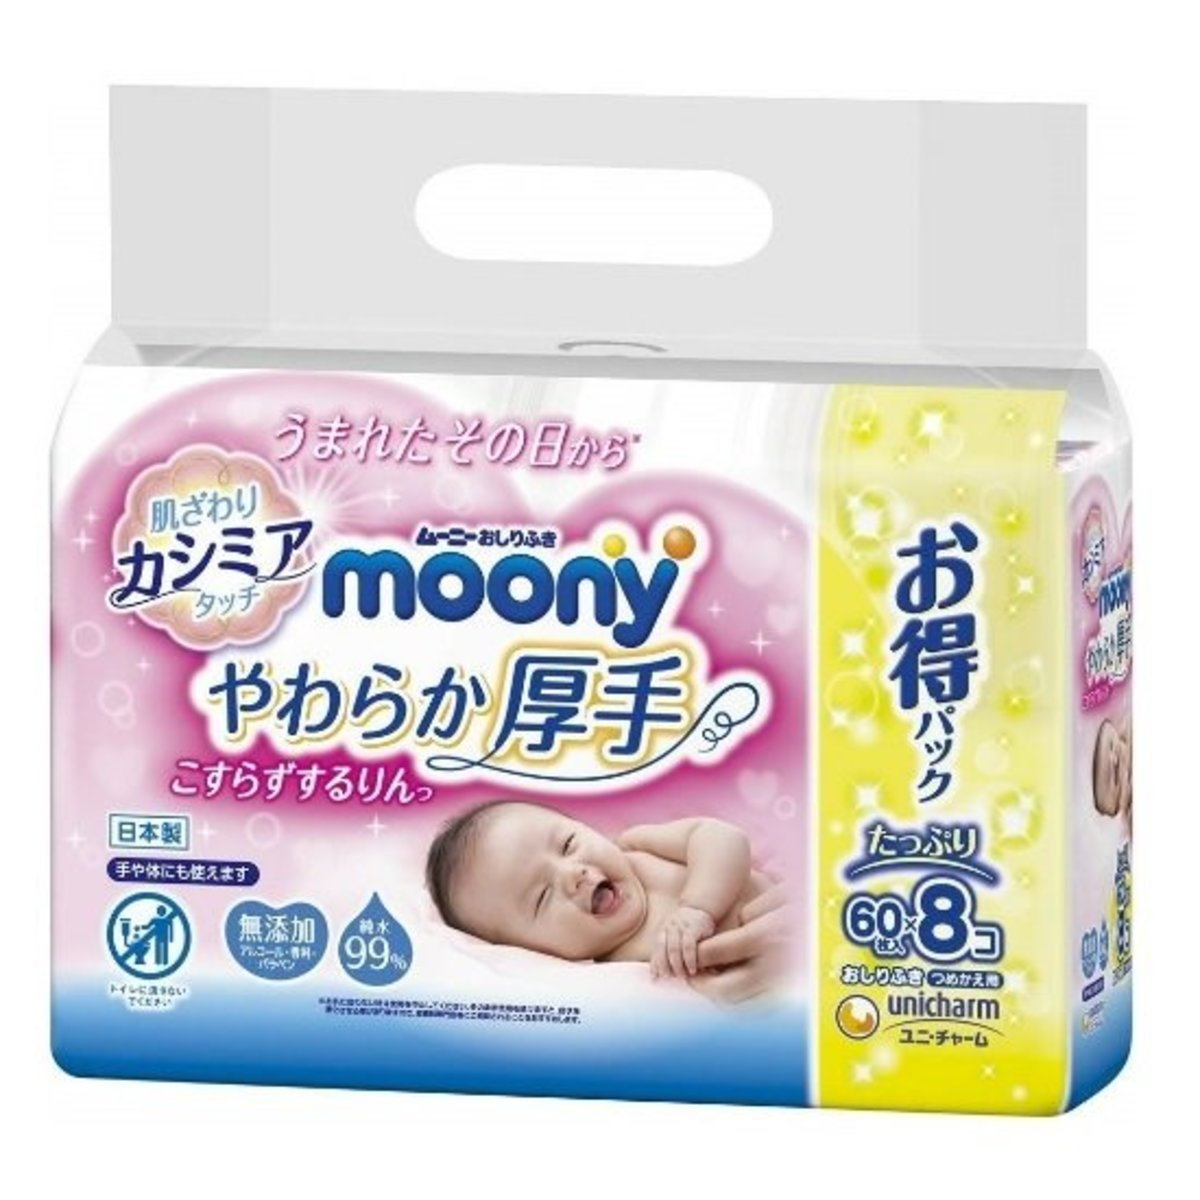 Moony baby wet wipe 60 sheet x 8 pack